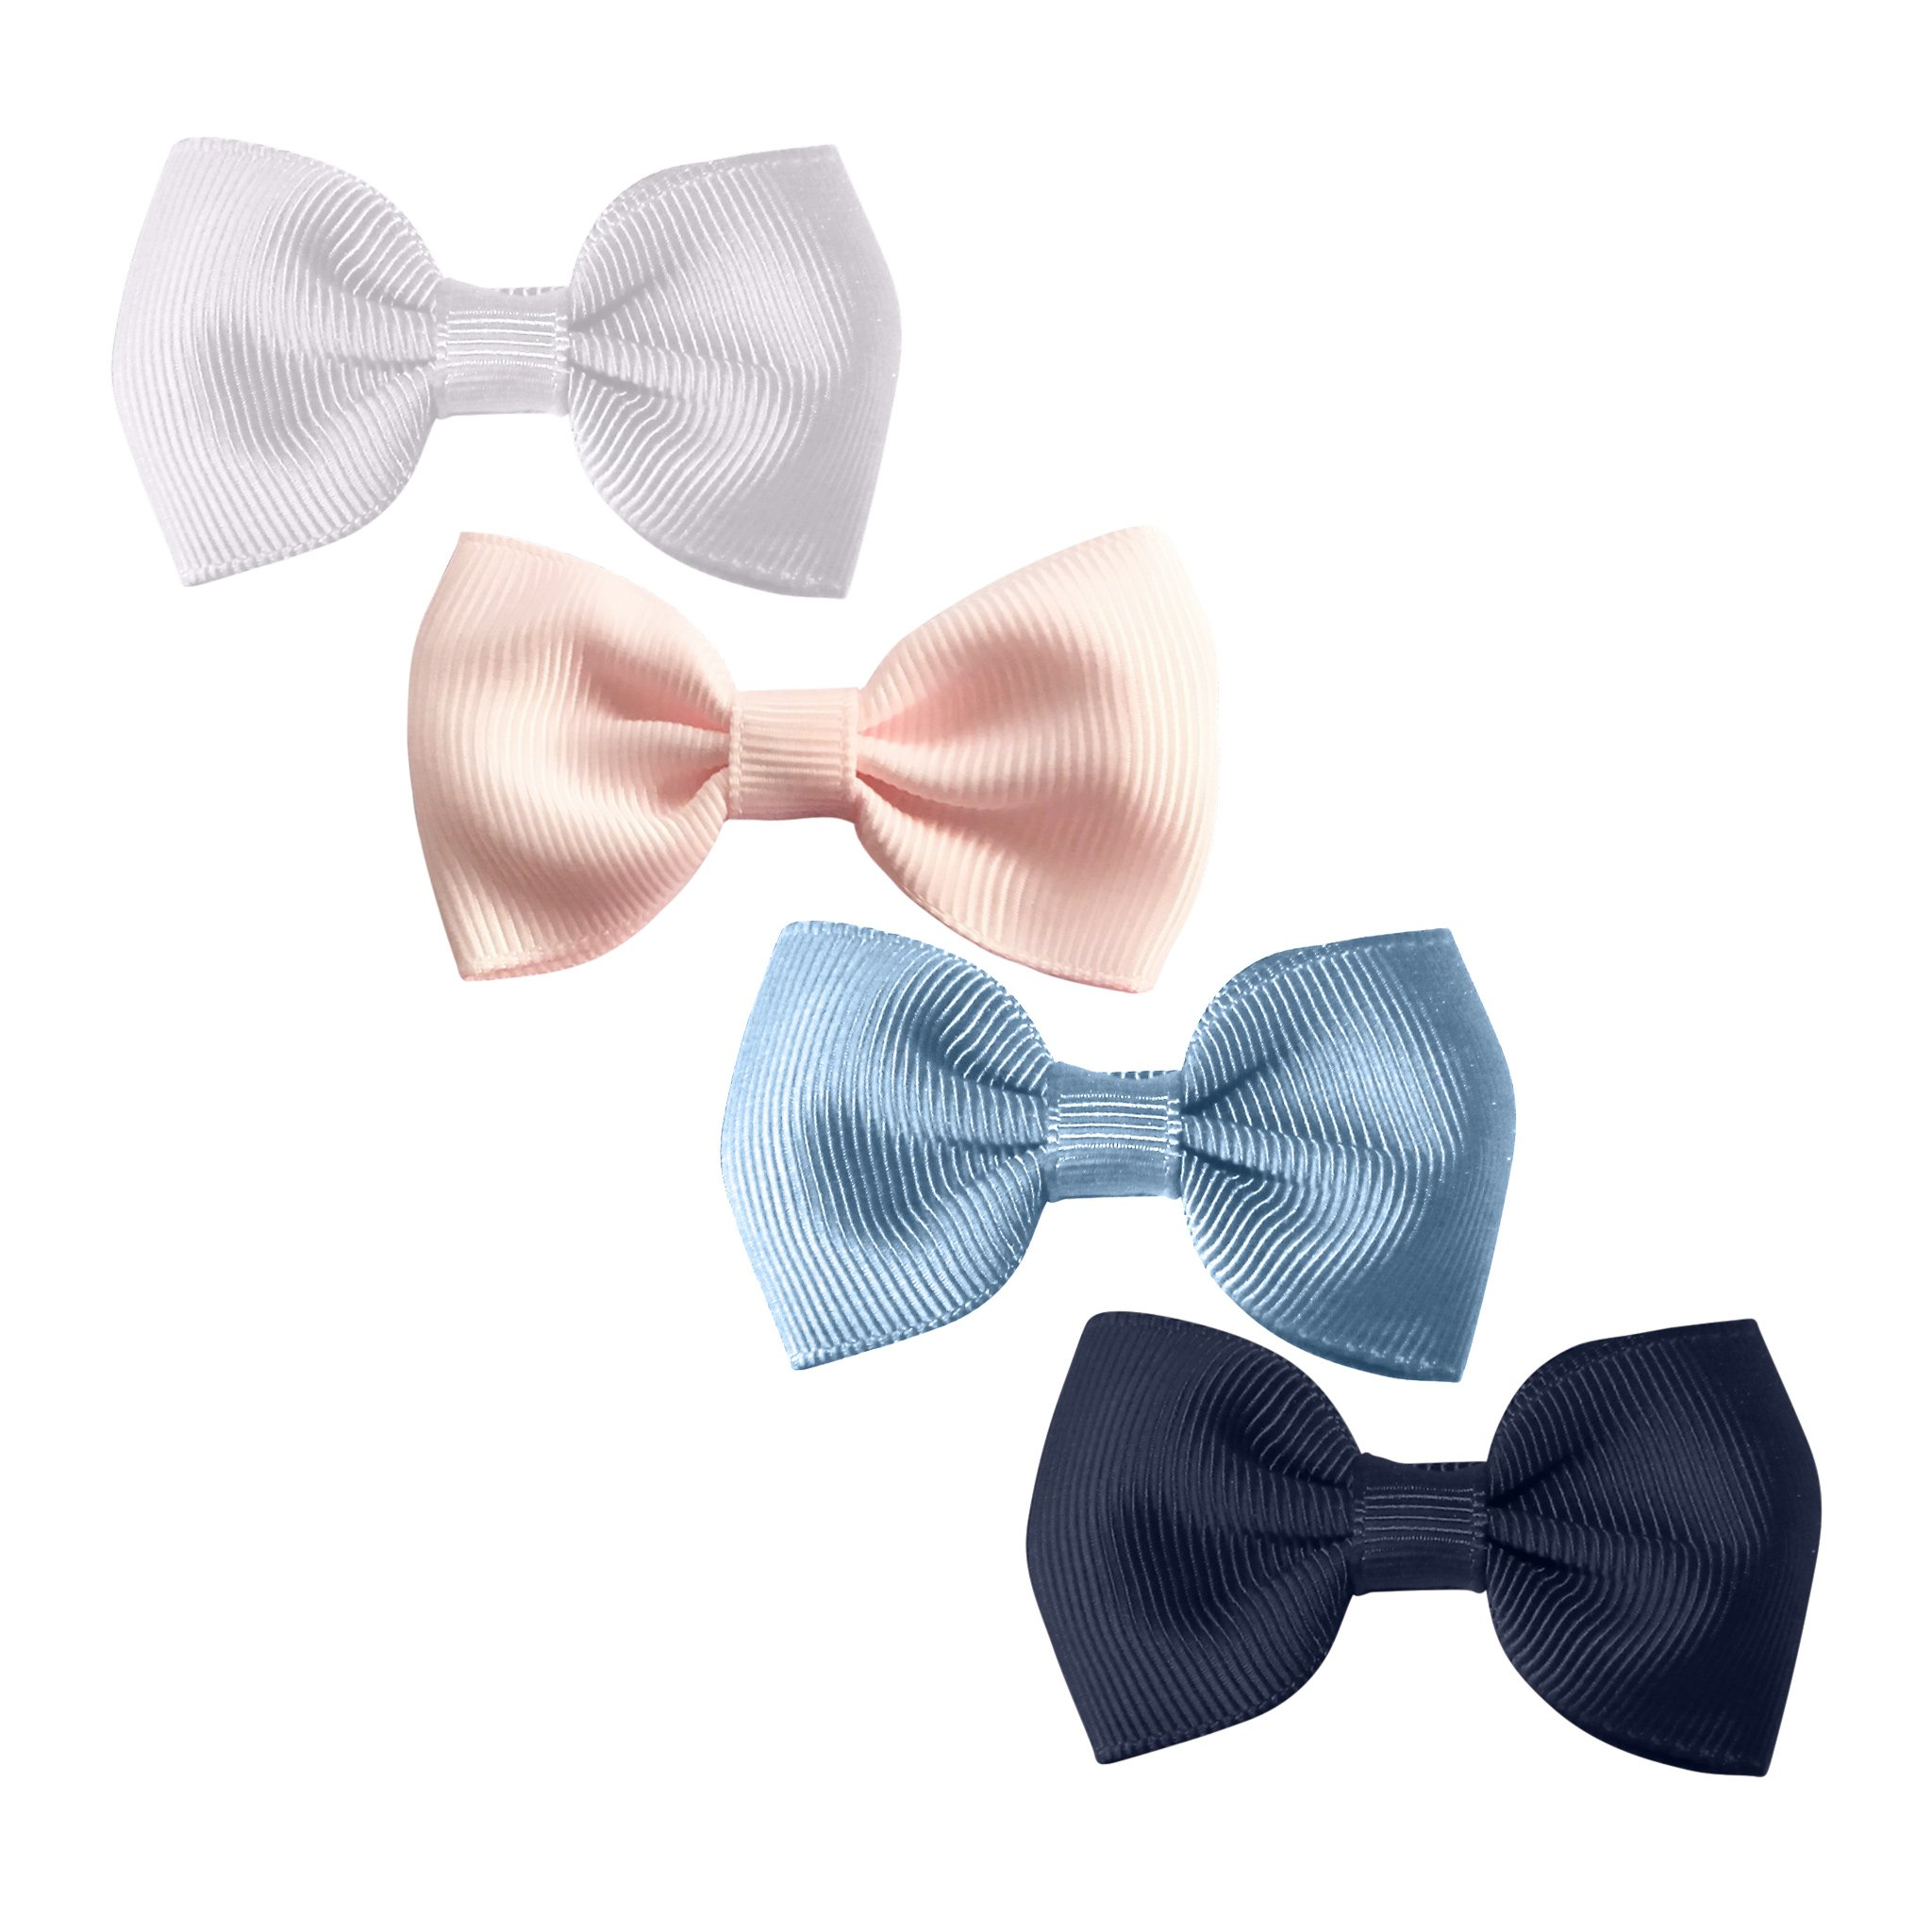 Image of Milledeux® Gift set - 4 Small bowtie bows - alligator clip - white/pink/blue